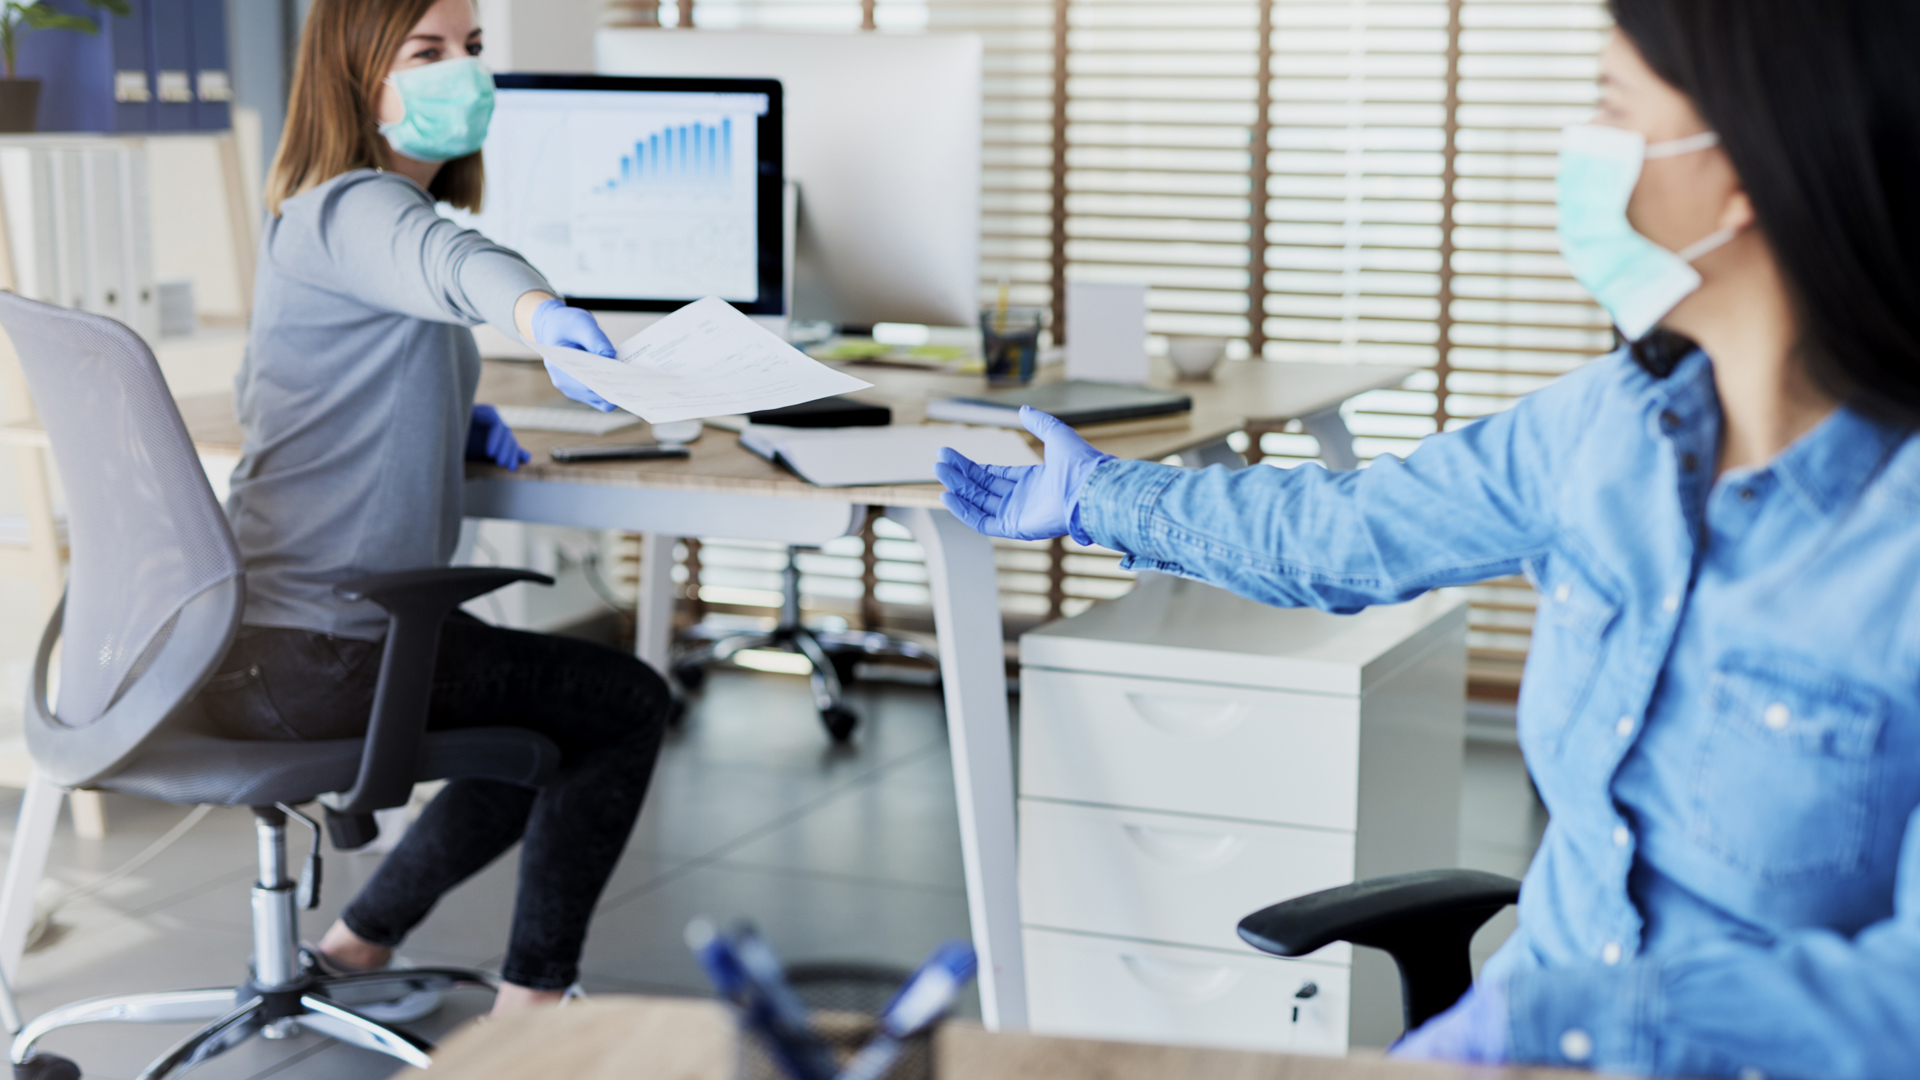 With the ongoing COVID-19 pandemic, transitioning back to your workspace takes the right plan. Here are some essential tips to help you protect your employees.